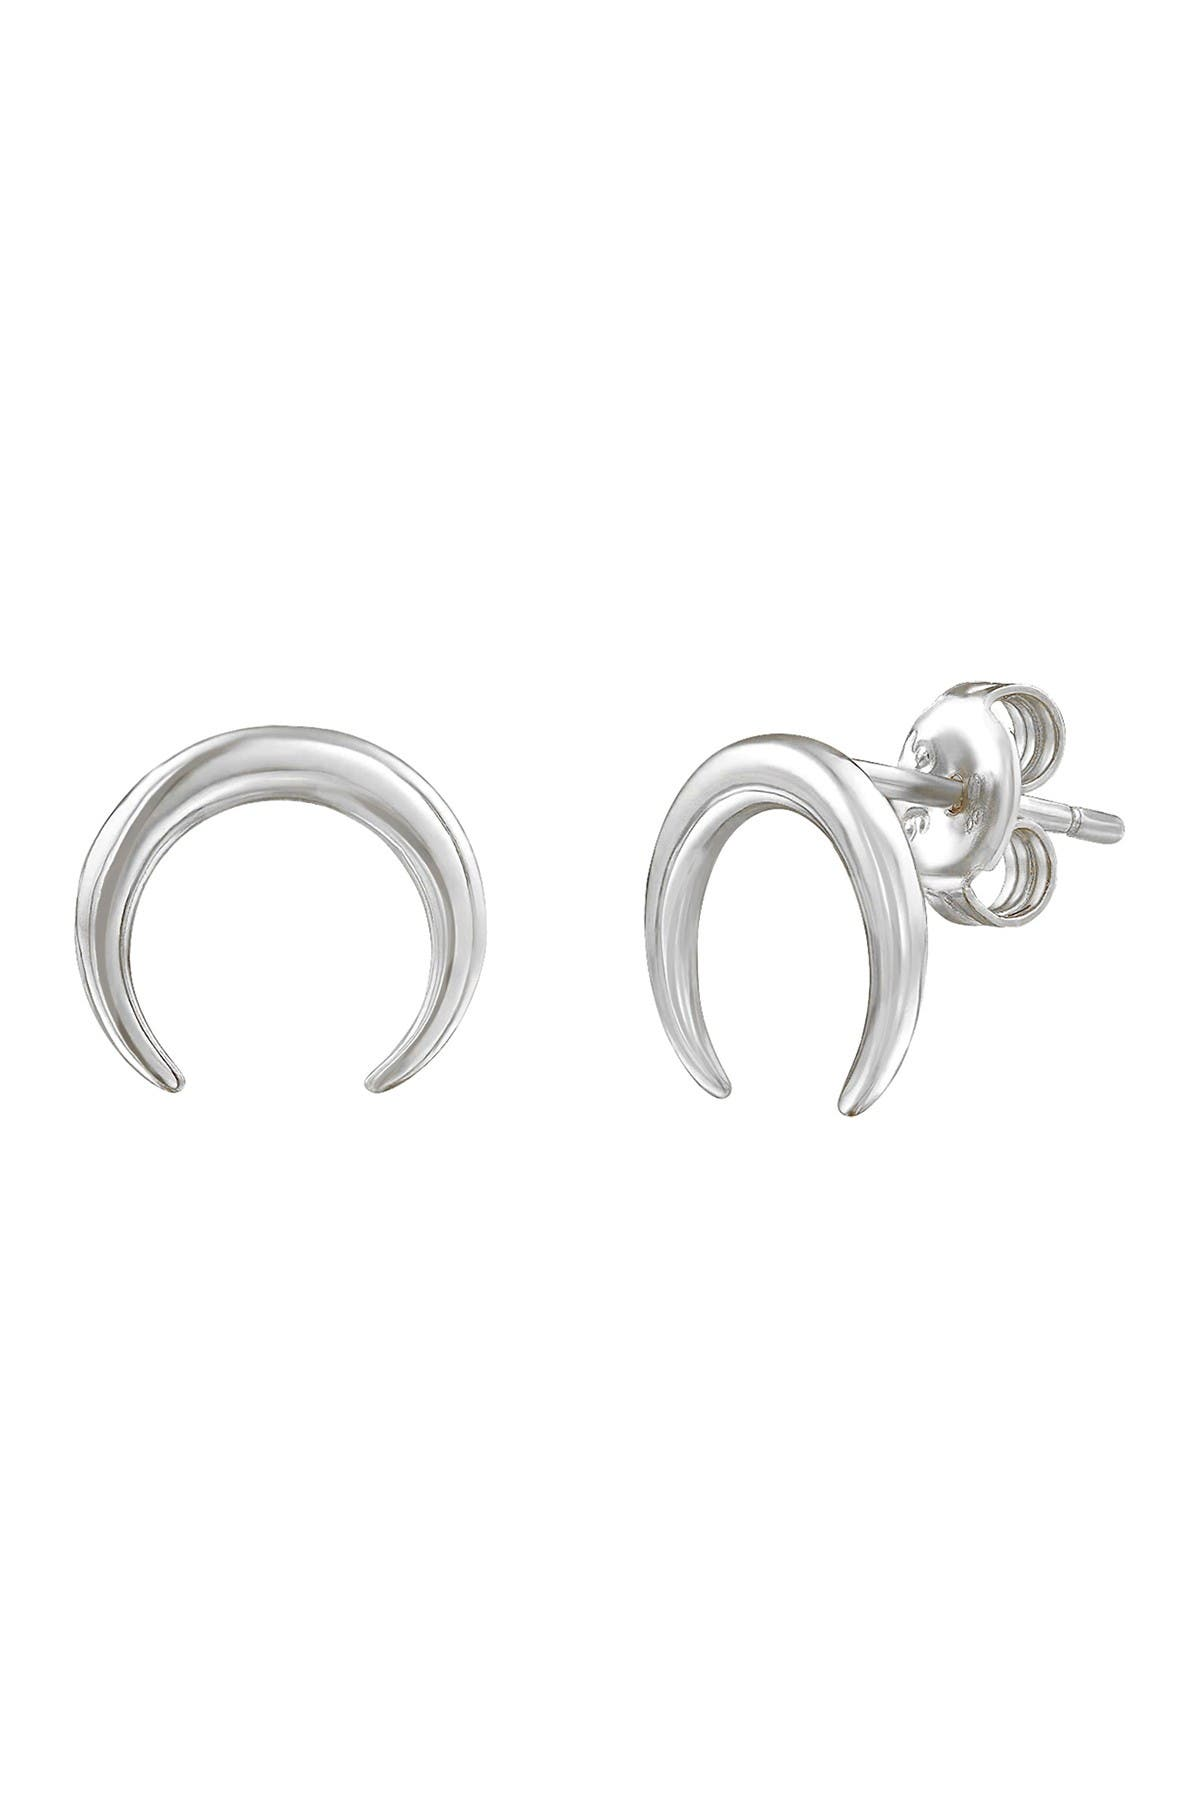 Savvy Cie Sterling Silver Horn Stud Earrings at Nordstrom Rack